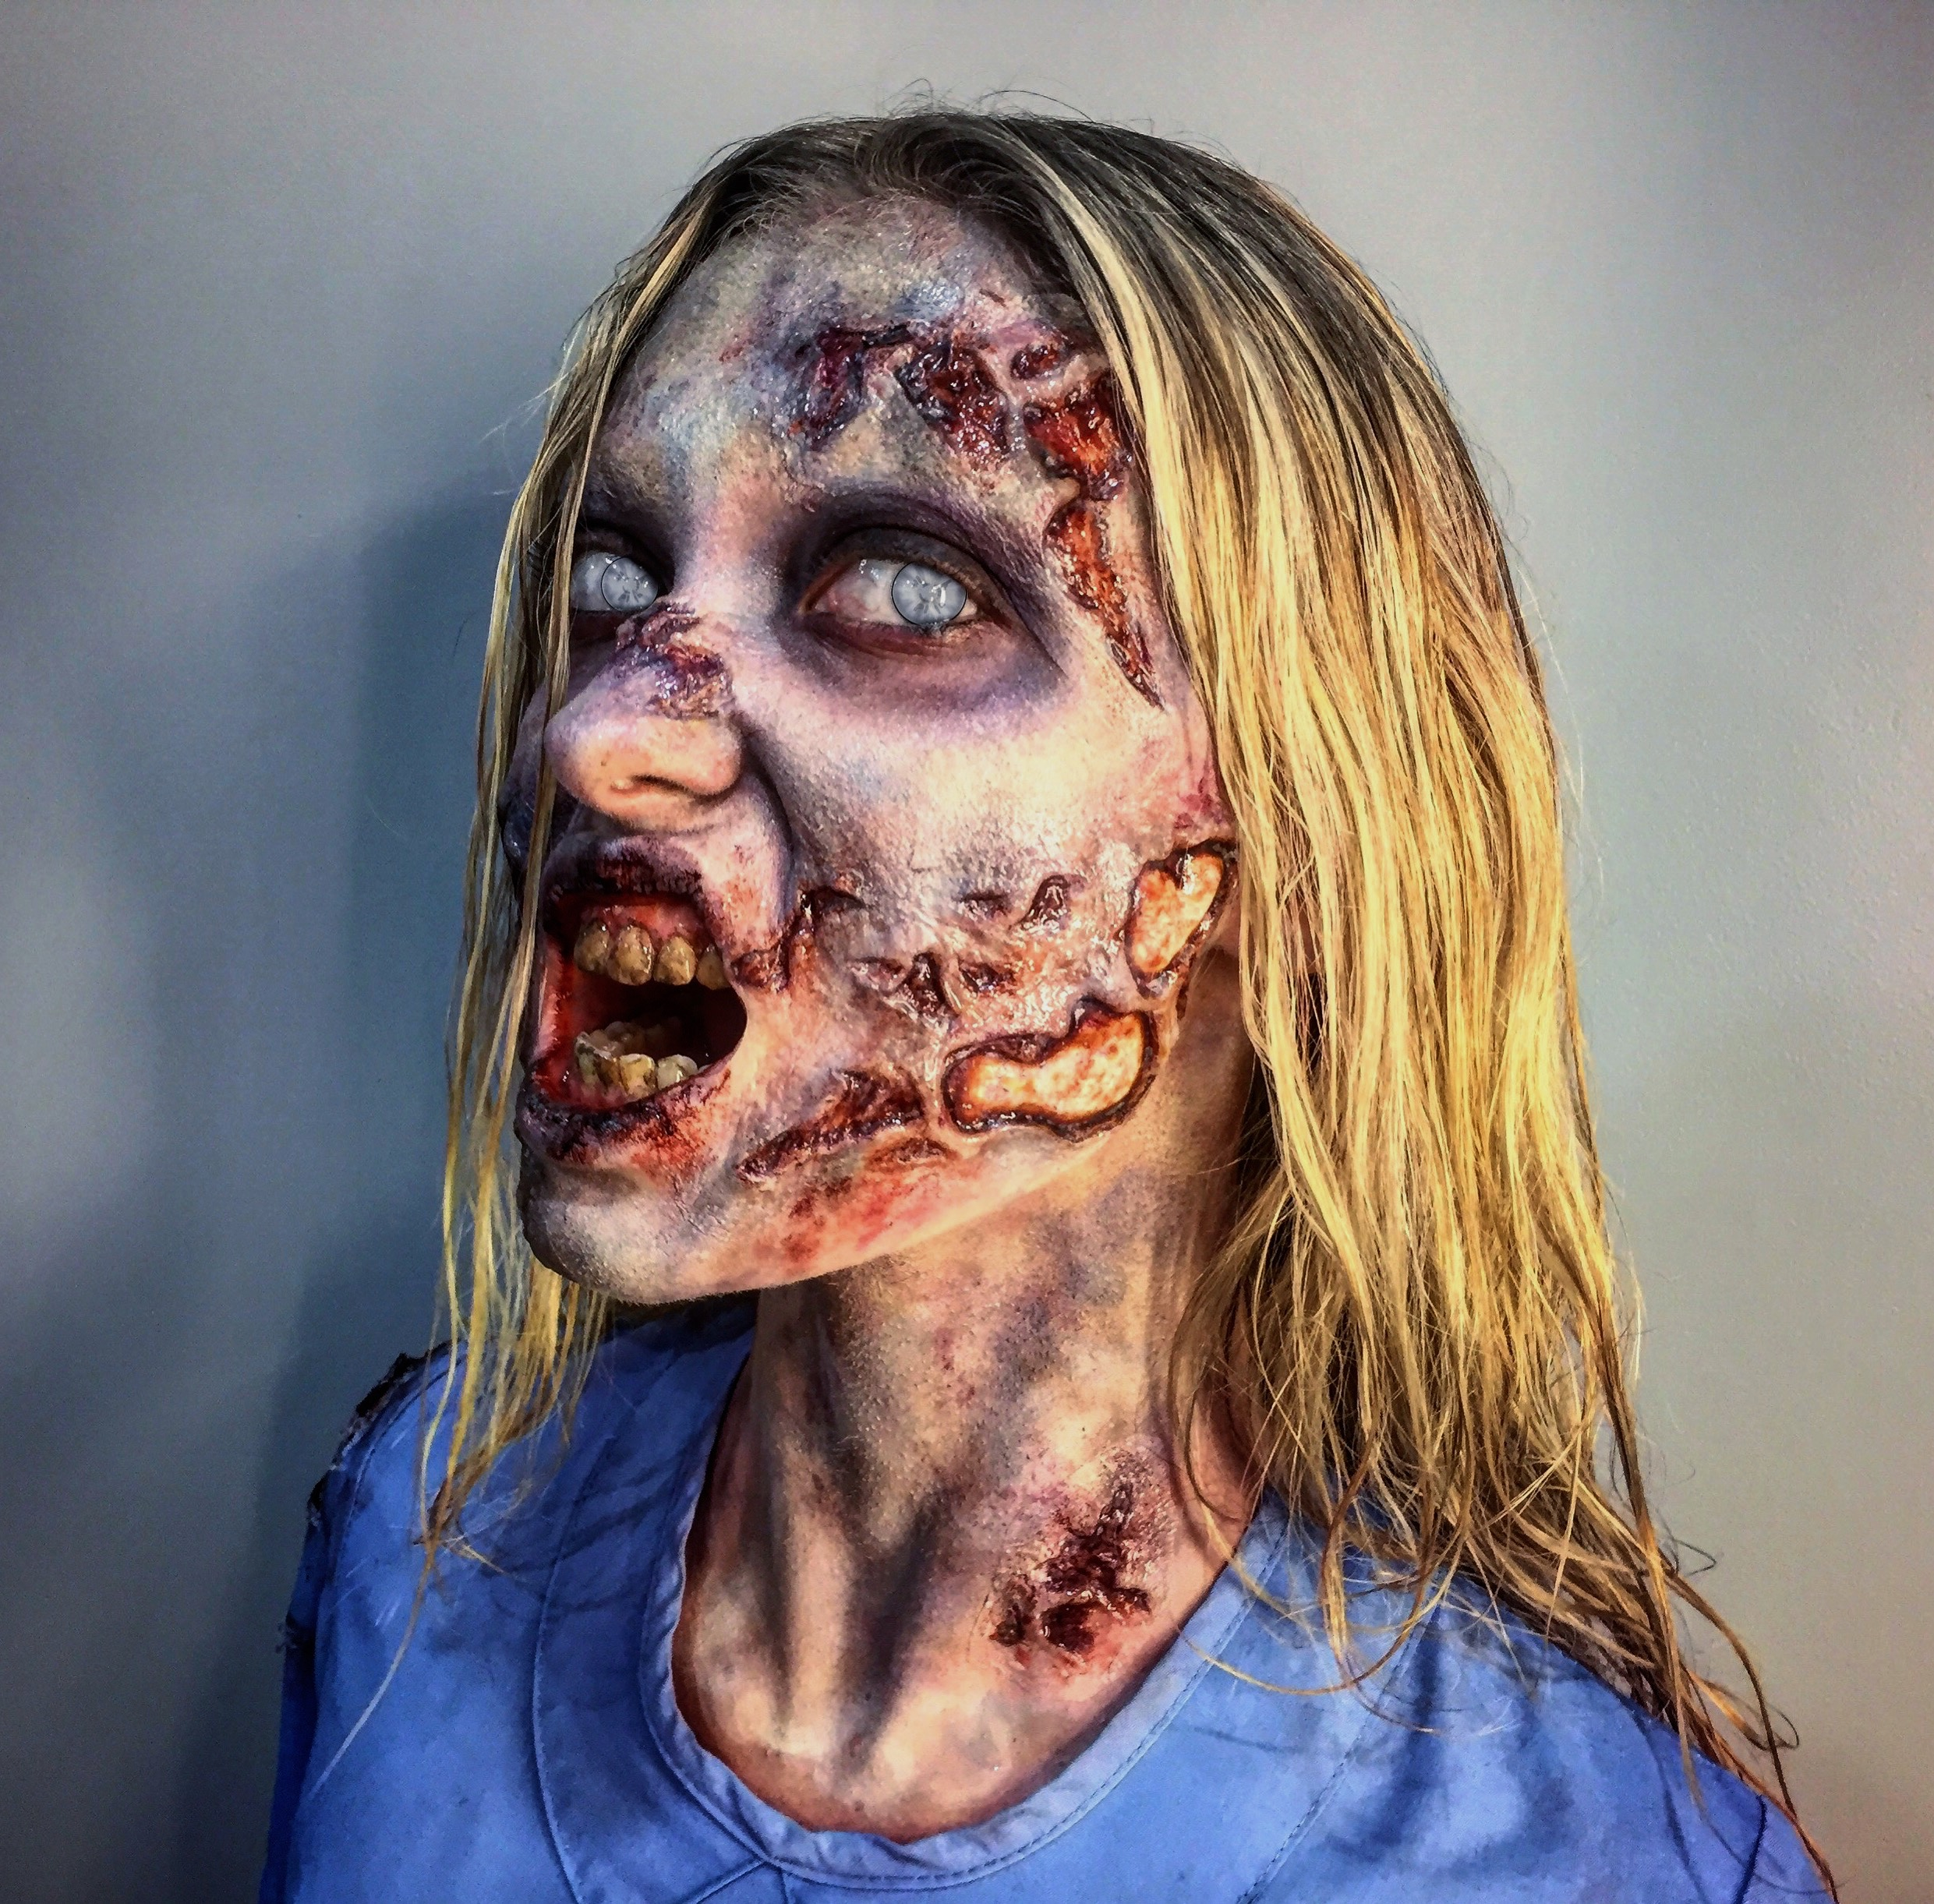 Application/Makeup by Hannah Sherer for Tinsley Transfers Merchandise/Social Media. Sculpt by Tinsley Transfers.